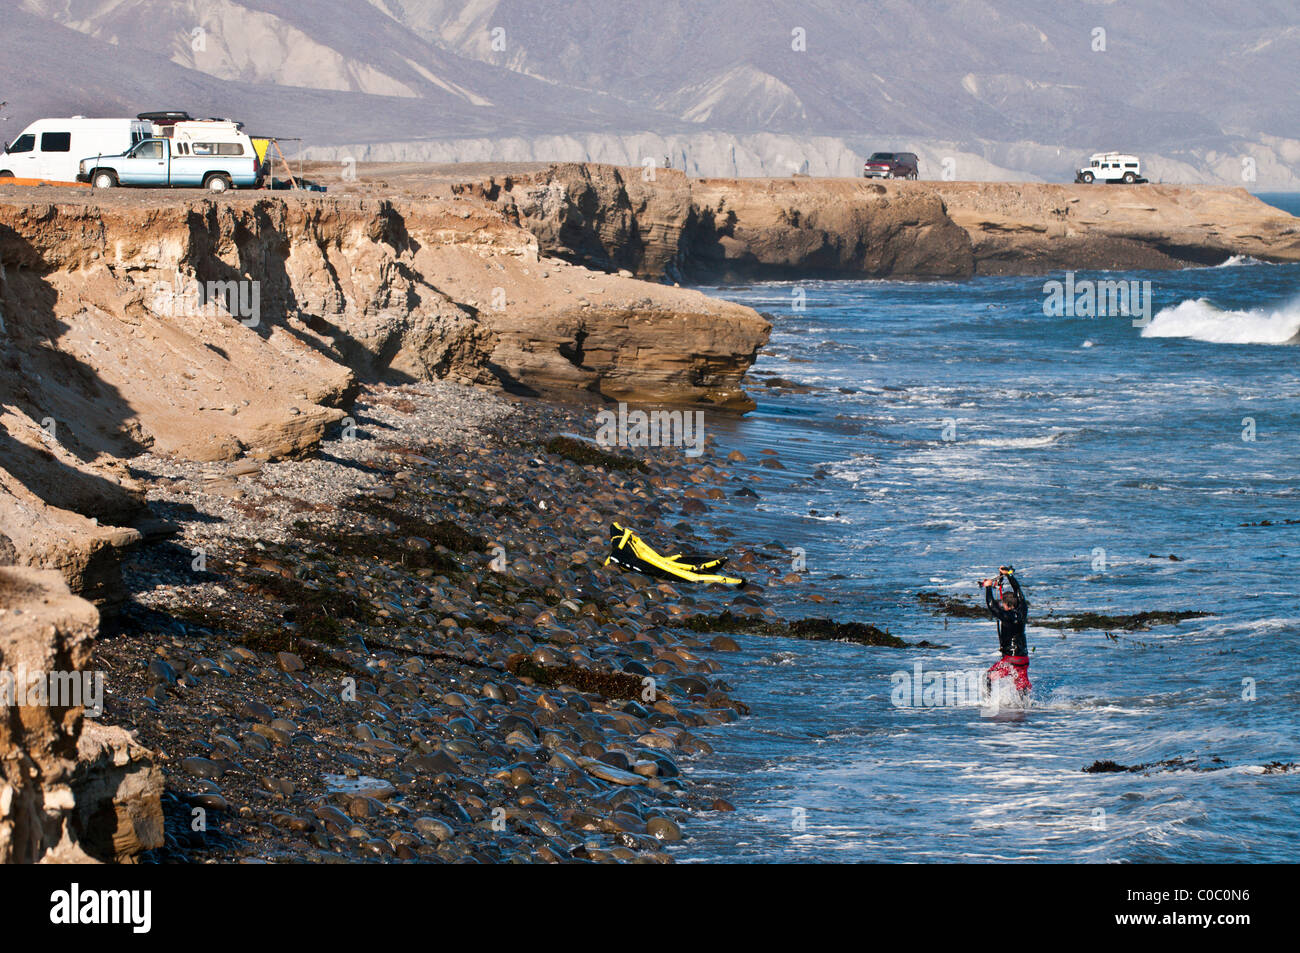 Kitesurfer & his crashed kite at Punto San Carlos, Baja California, Mexico - Stock Image